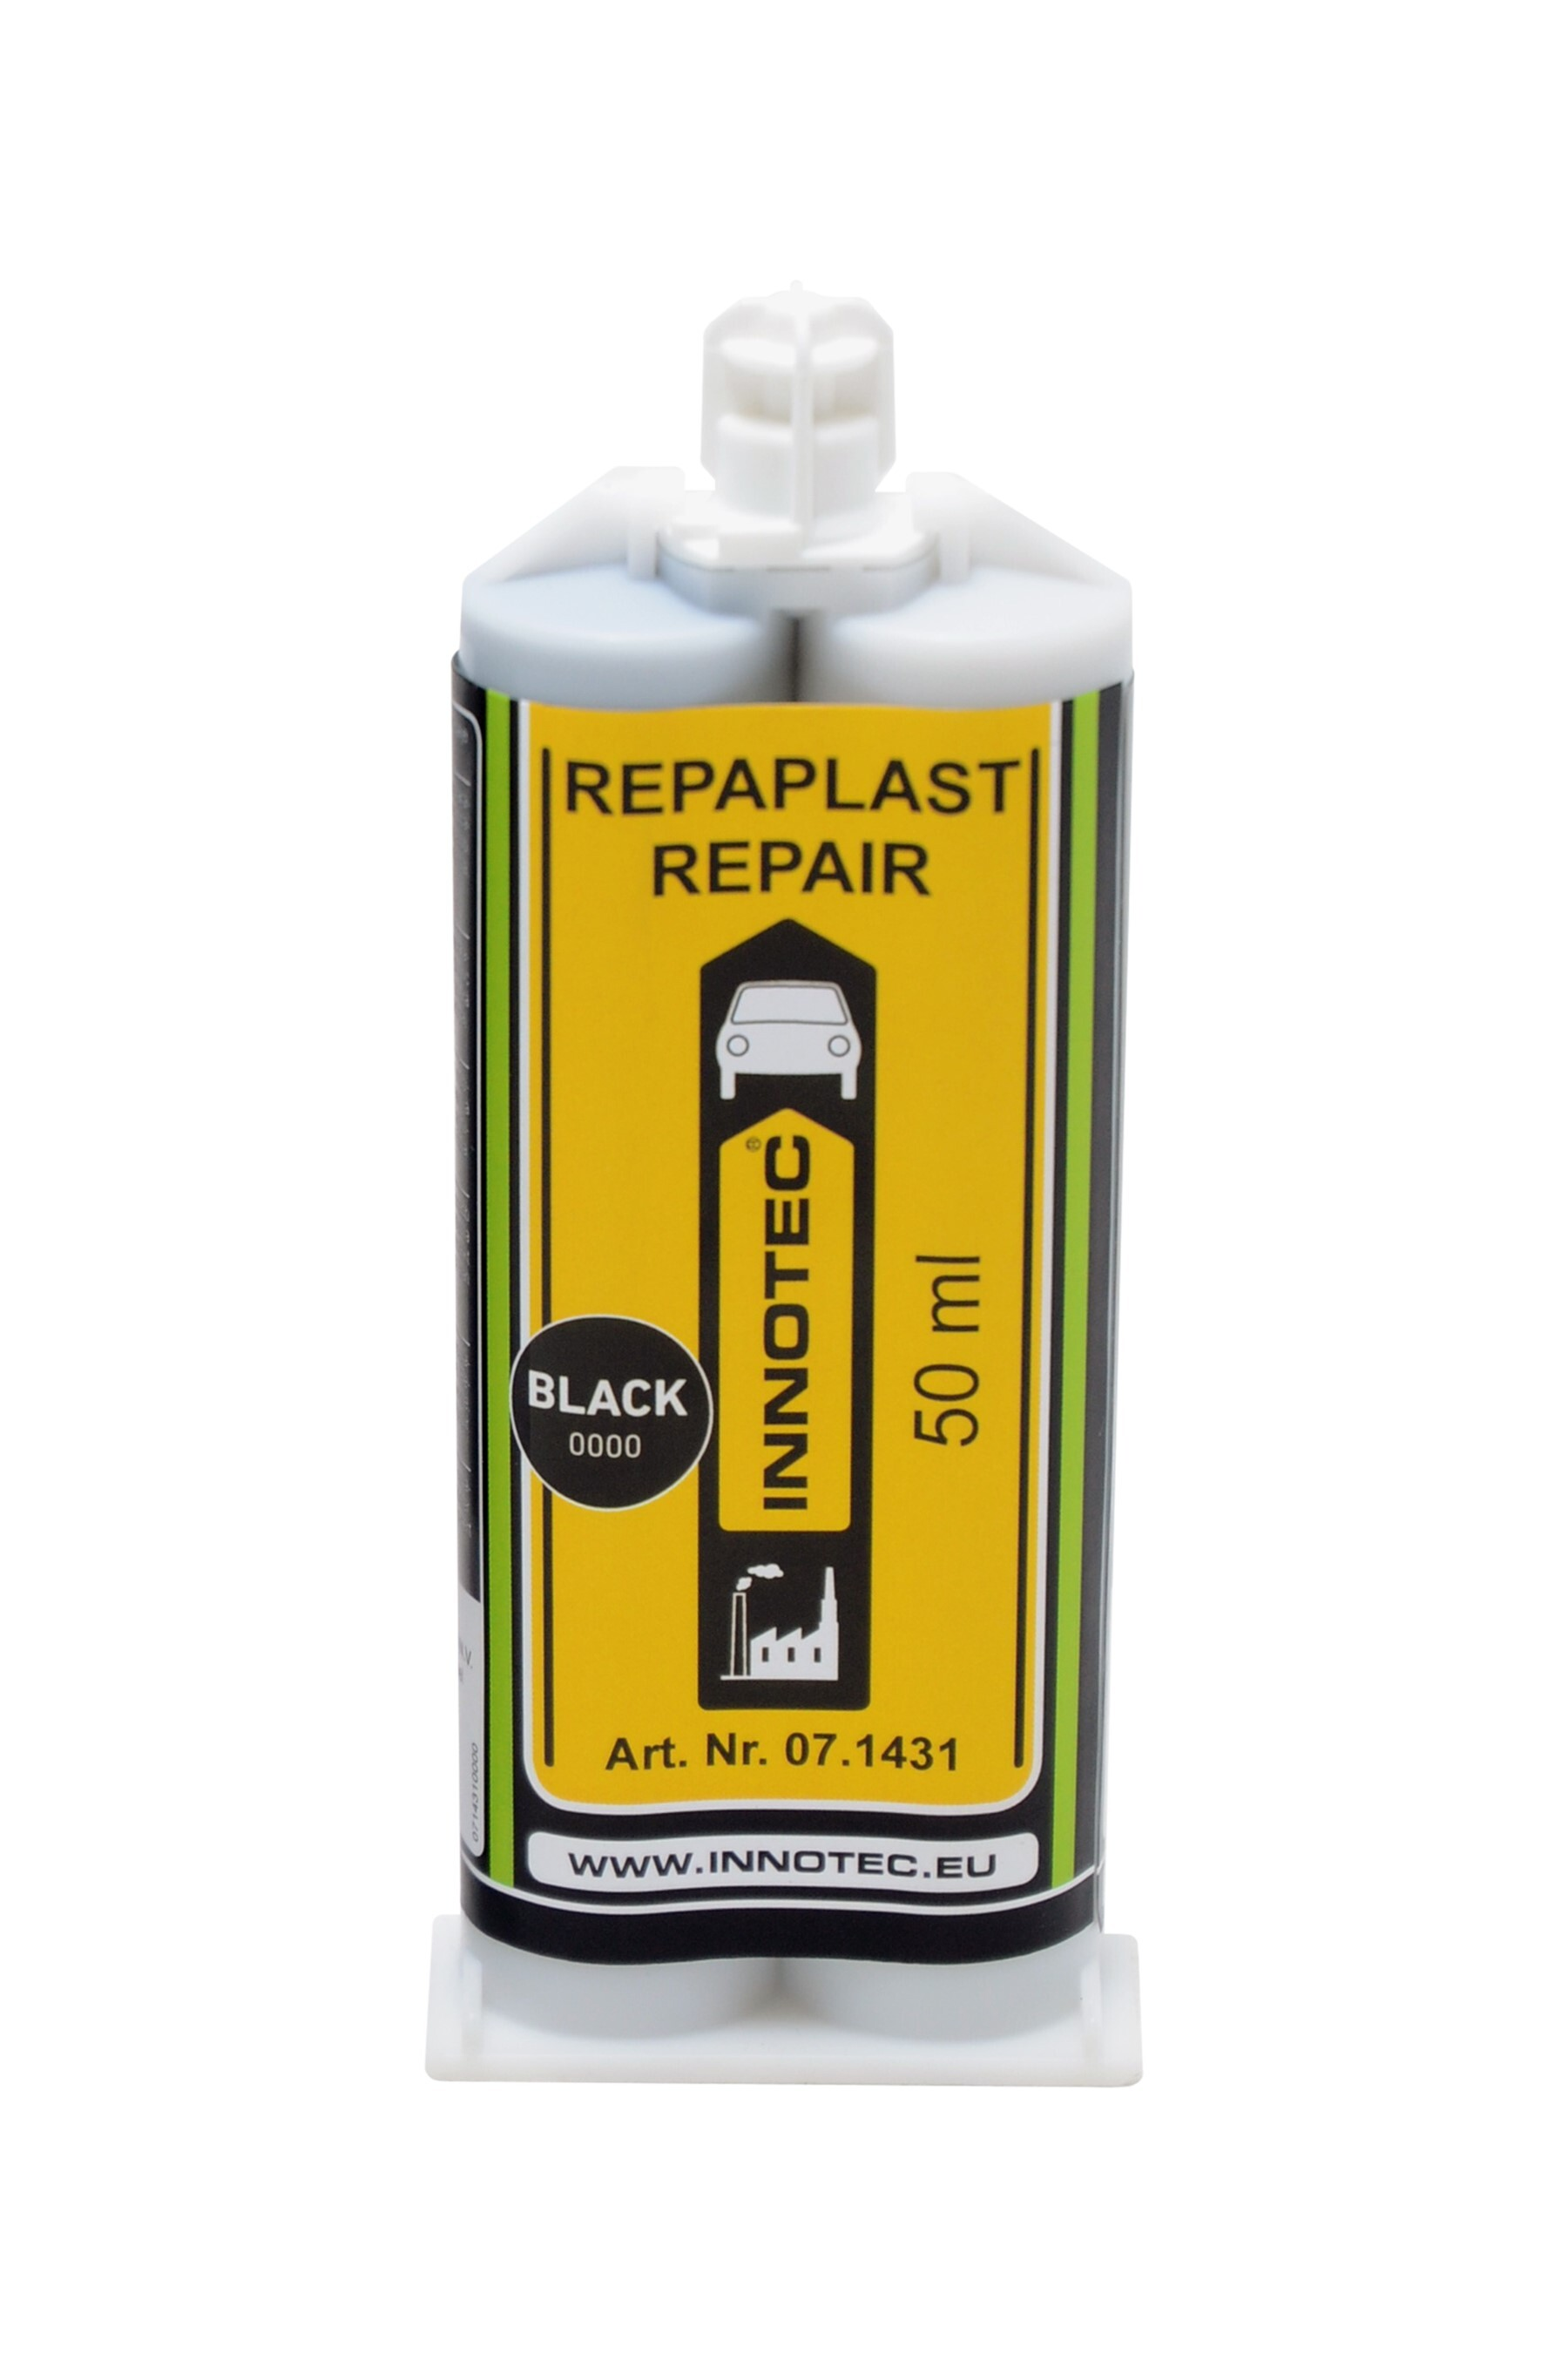 1897 Repaplast repair Black